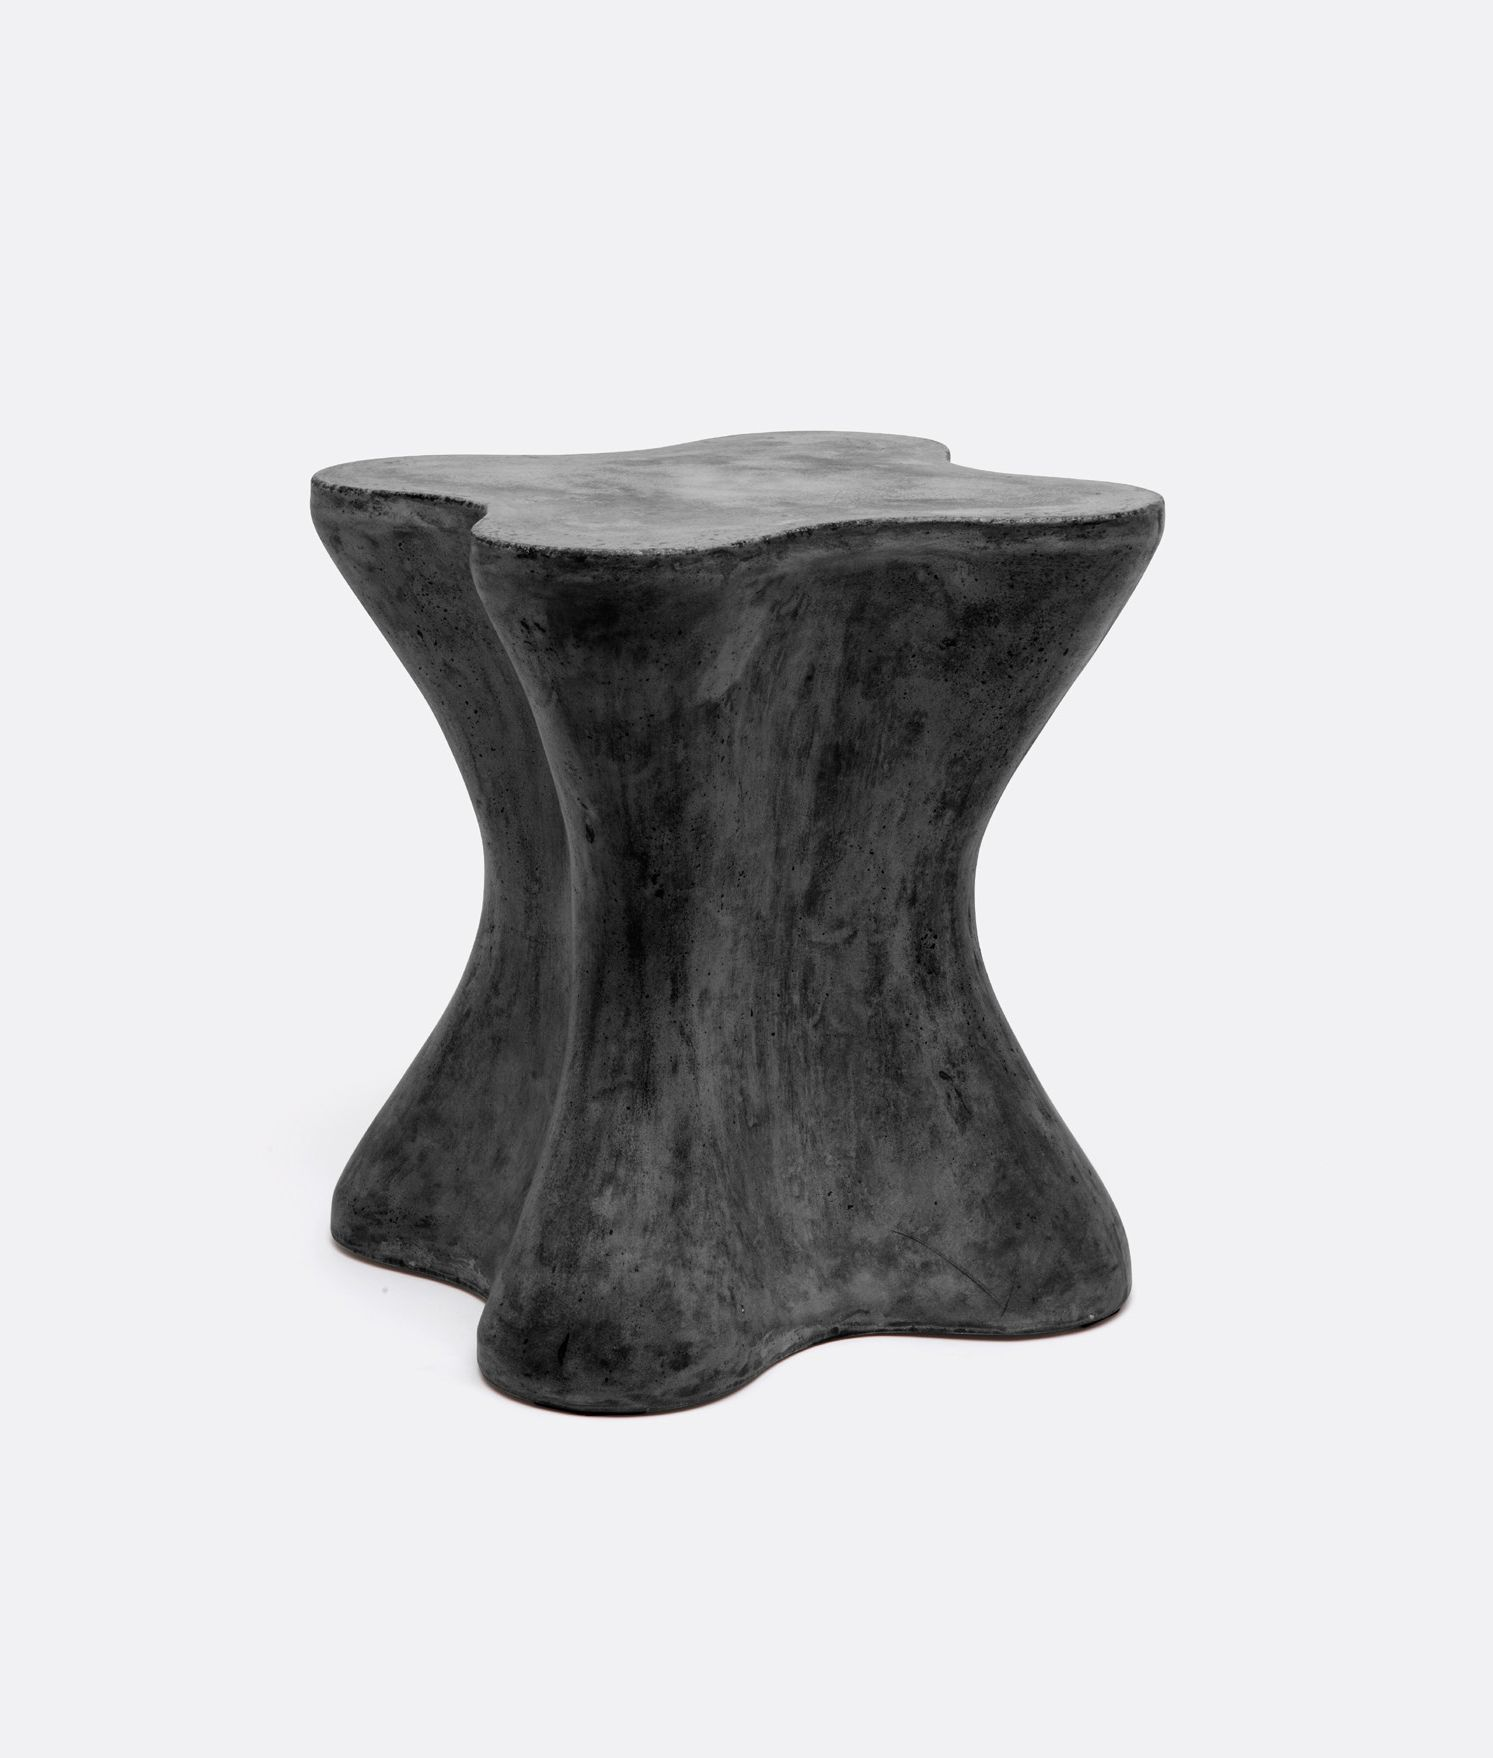 outdoor small arbre concrete side table furniture accent stool minor imperfections and cracks expected available dark grey black also large pier desk breakfast bar stools